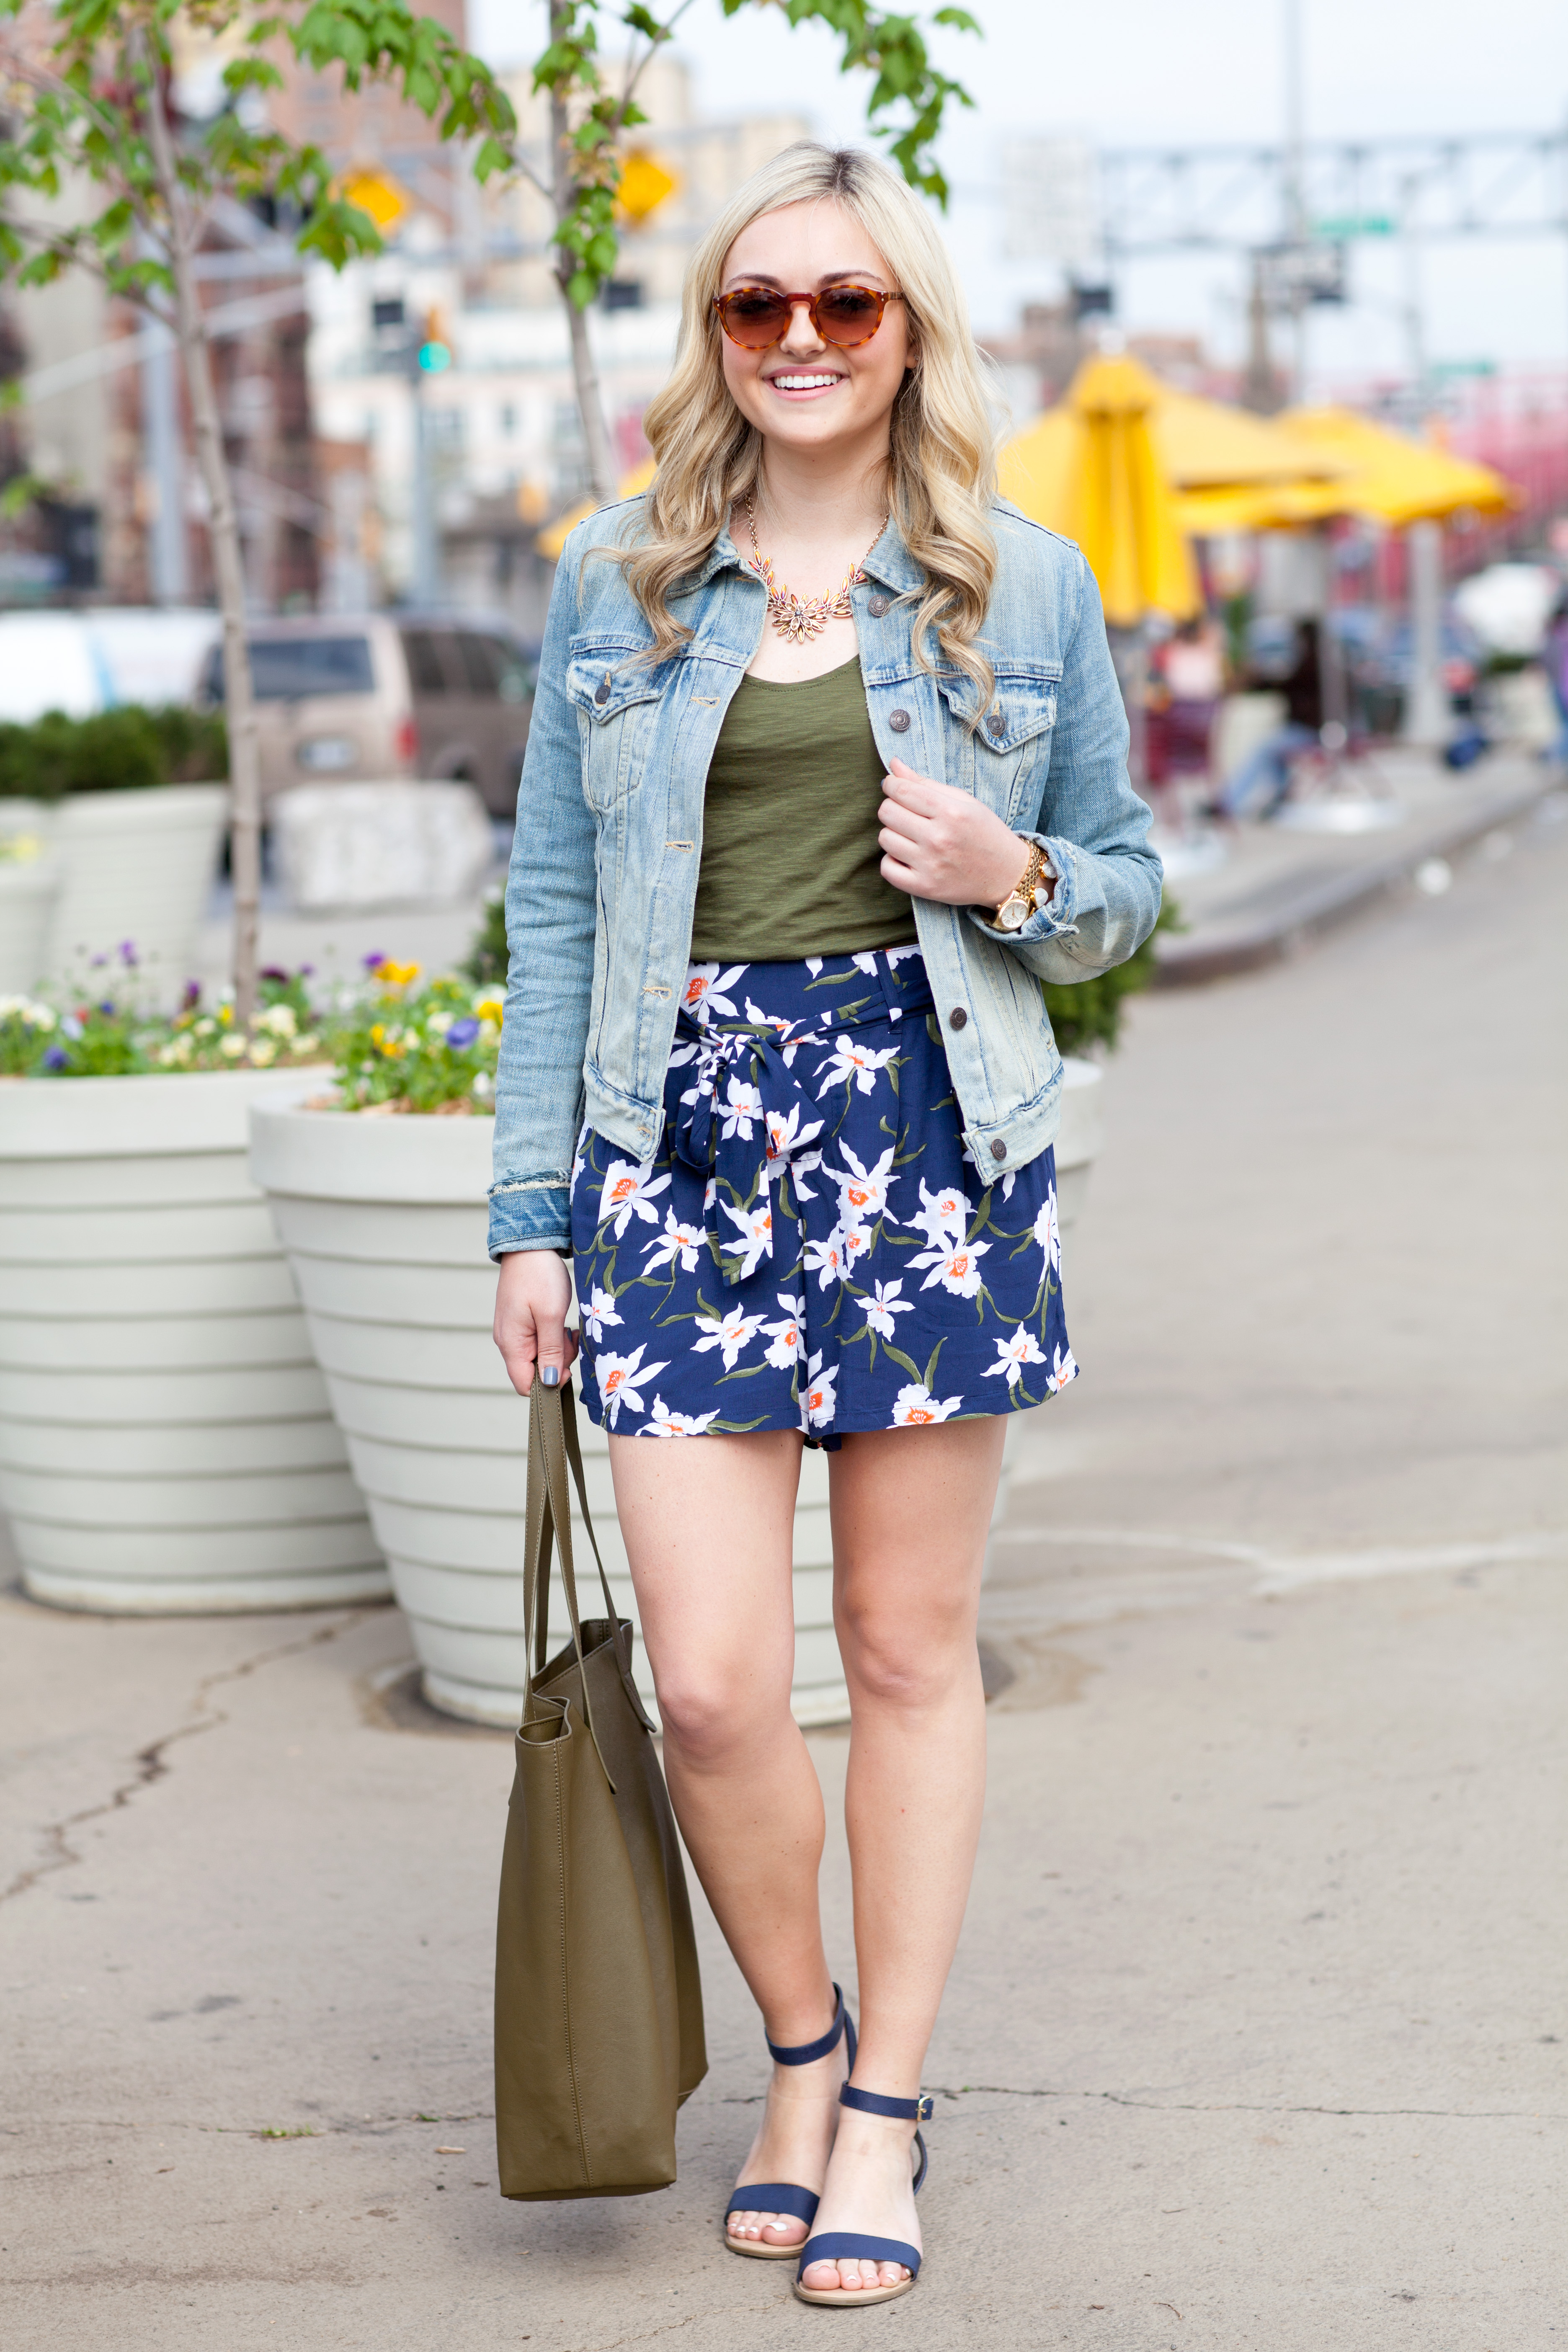 What to wear with floral printed shorts outfit u2014 bows u0026 sequins